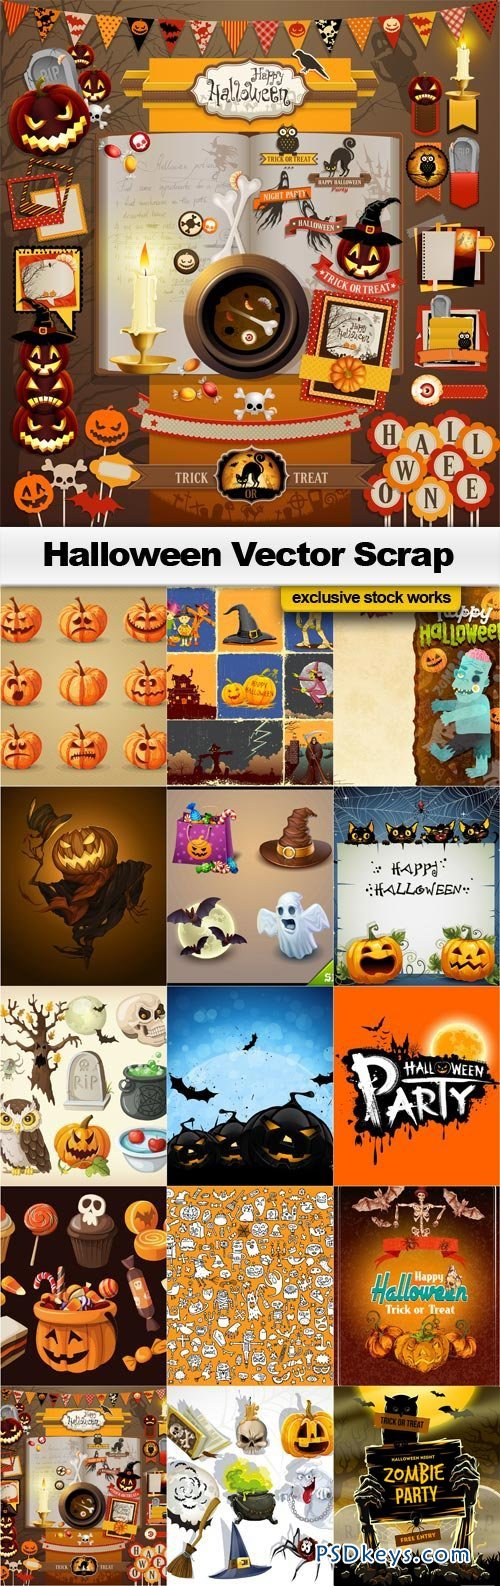 500x1586 Halloween Vector Scrap